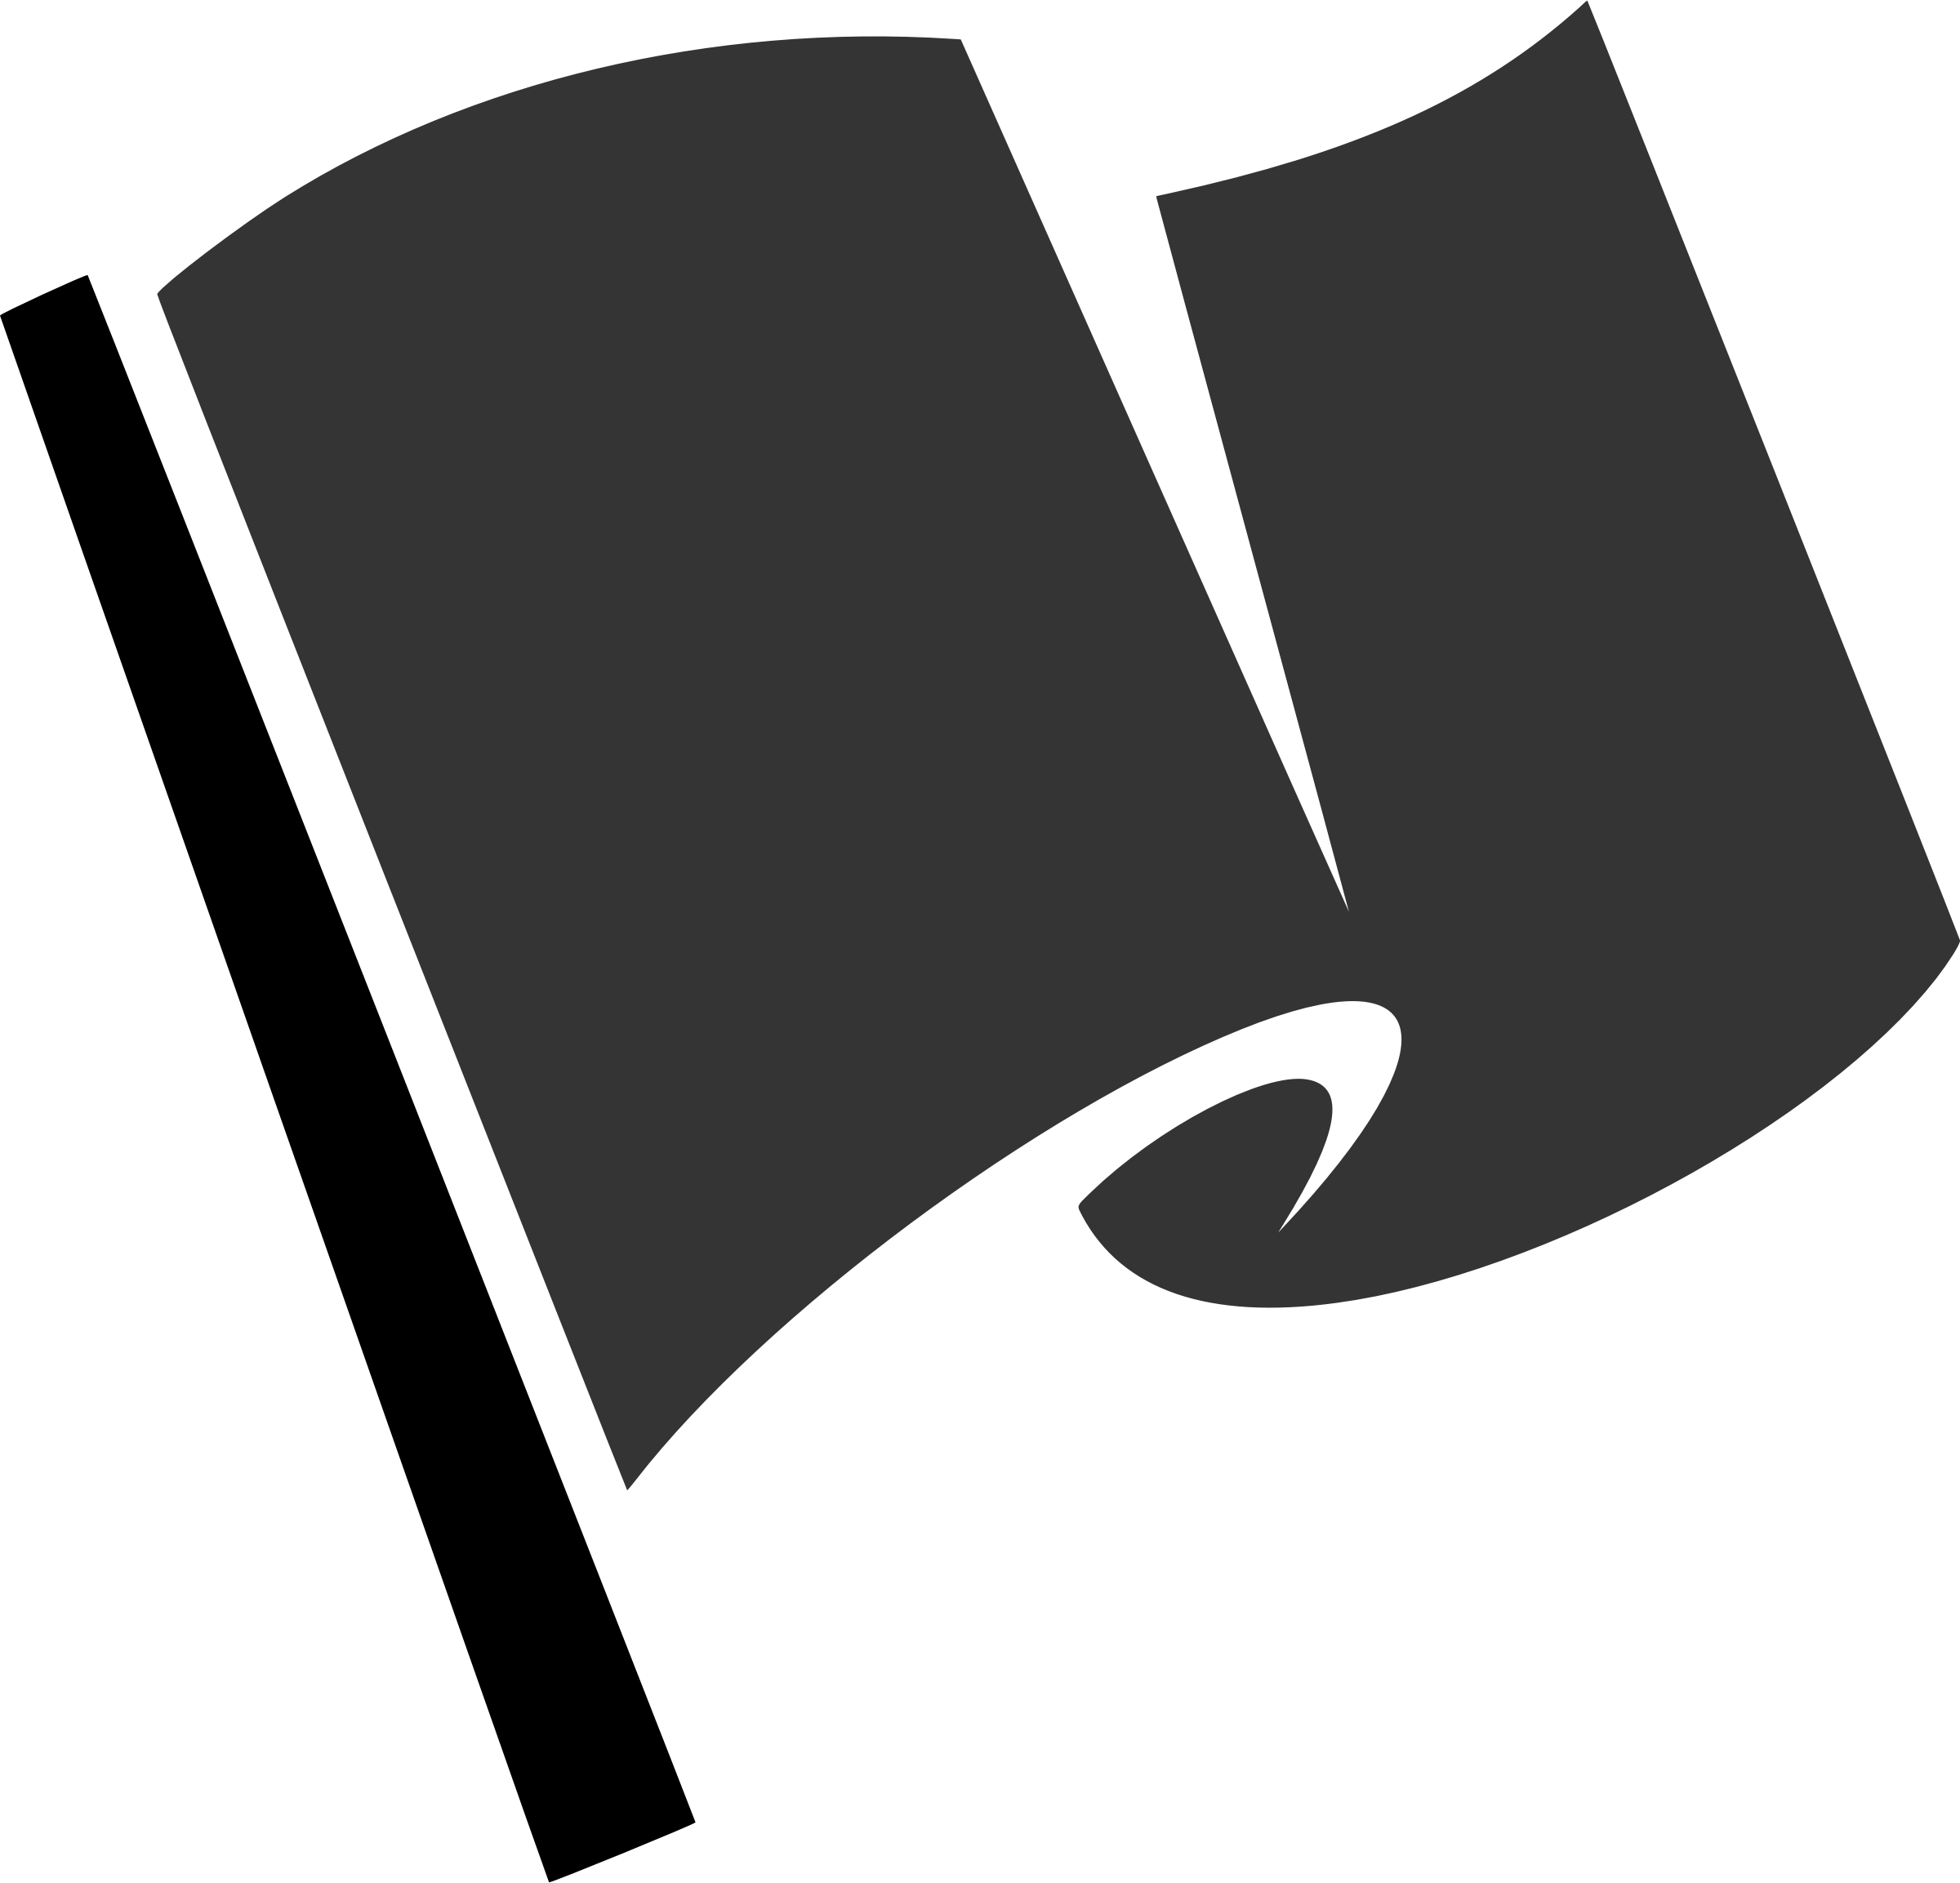 Hirnlichtspiele's black flag vectorized  by Firkin